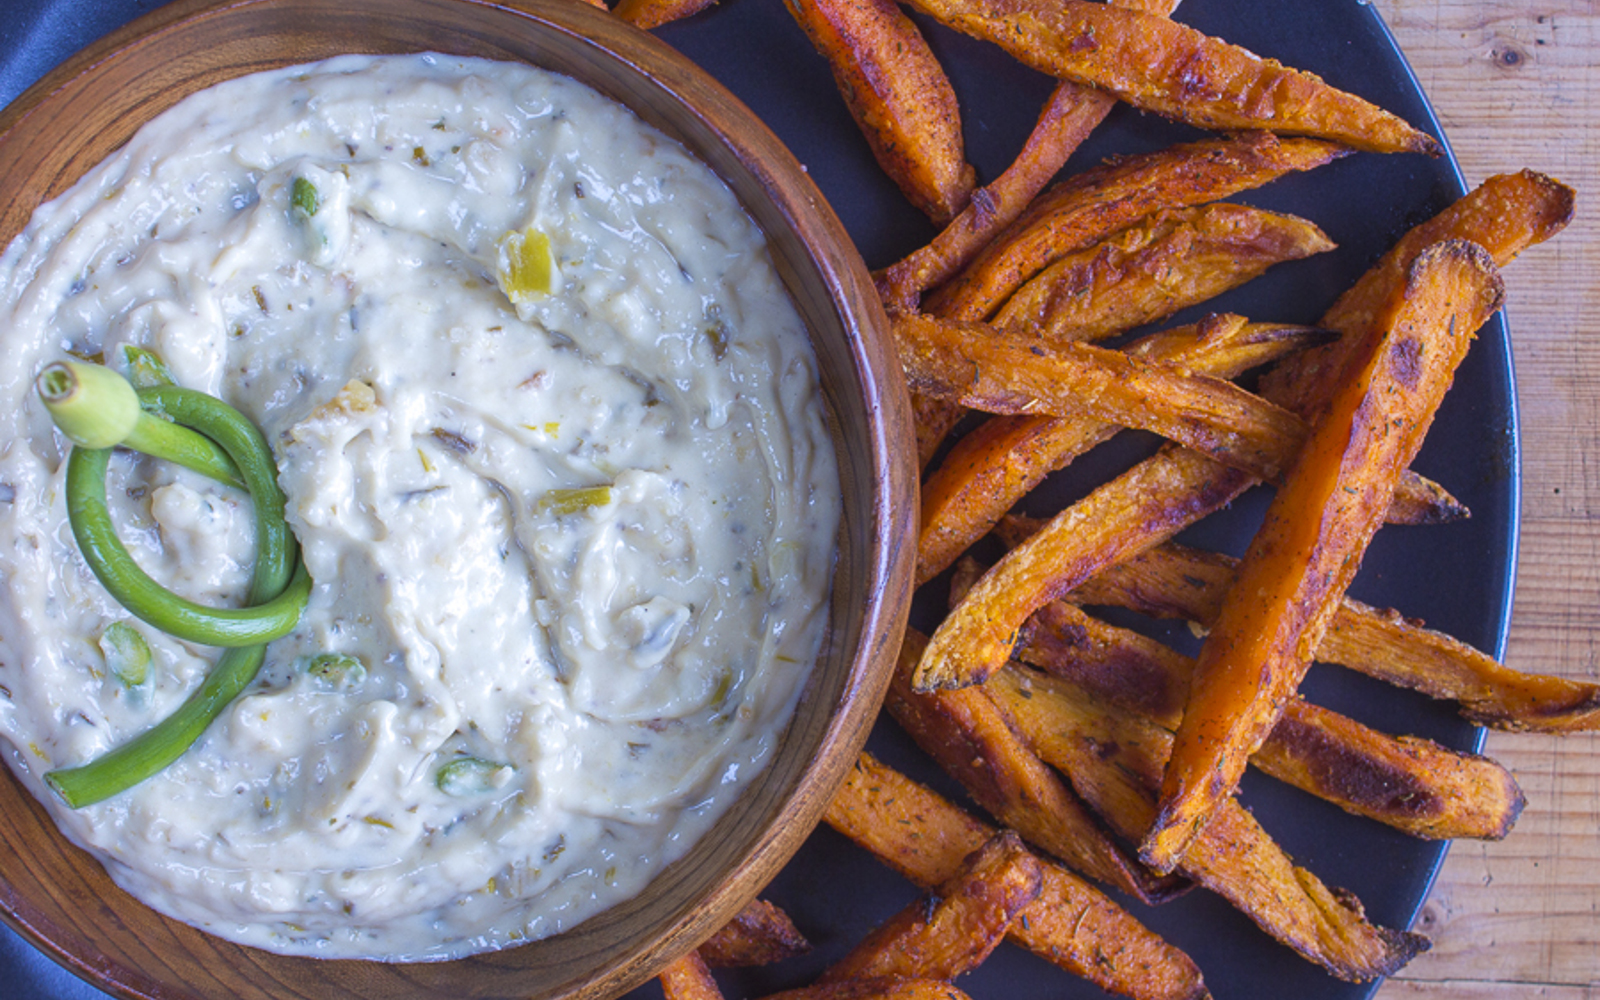 Healthier Roast Garlic and Onion Dip